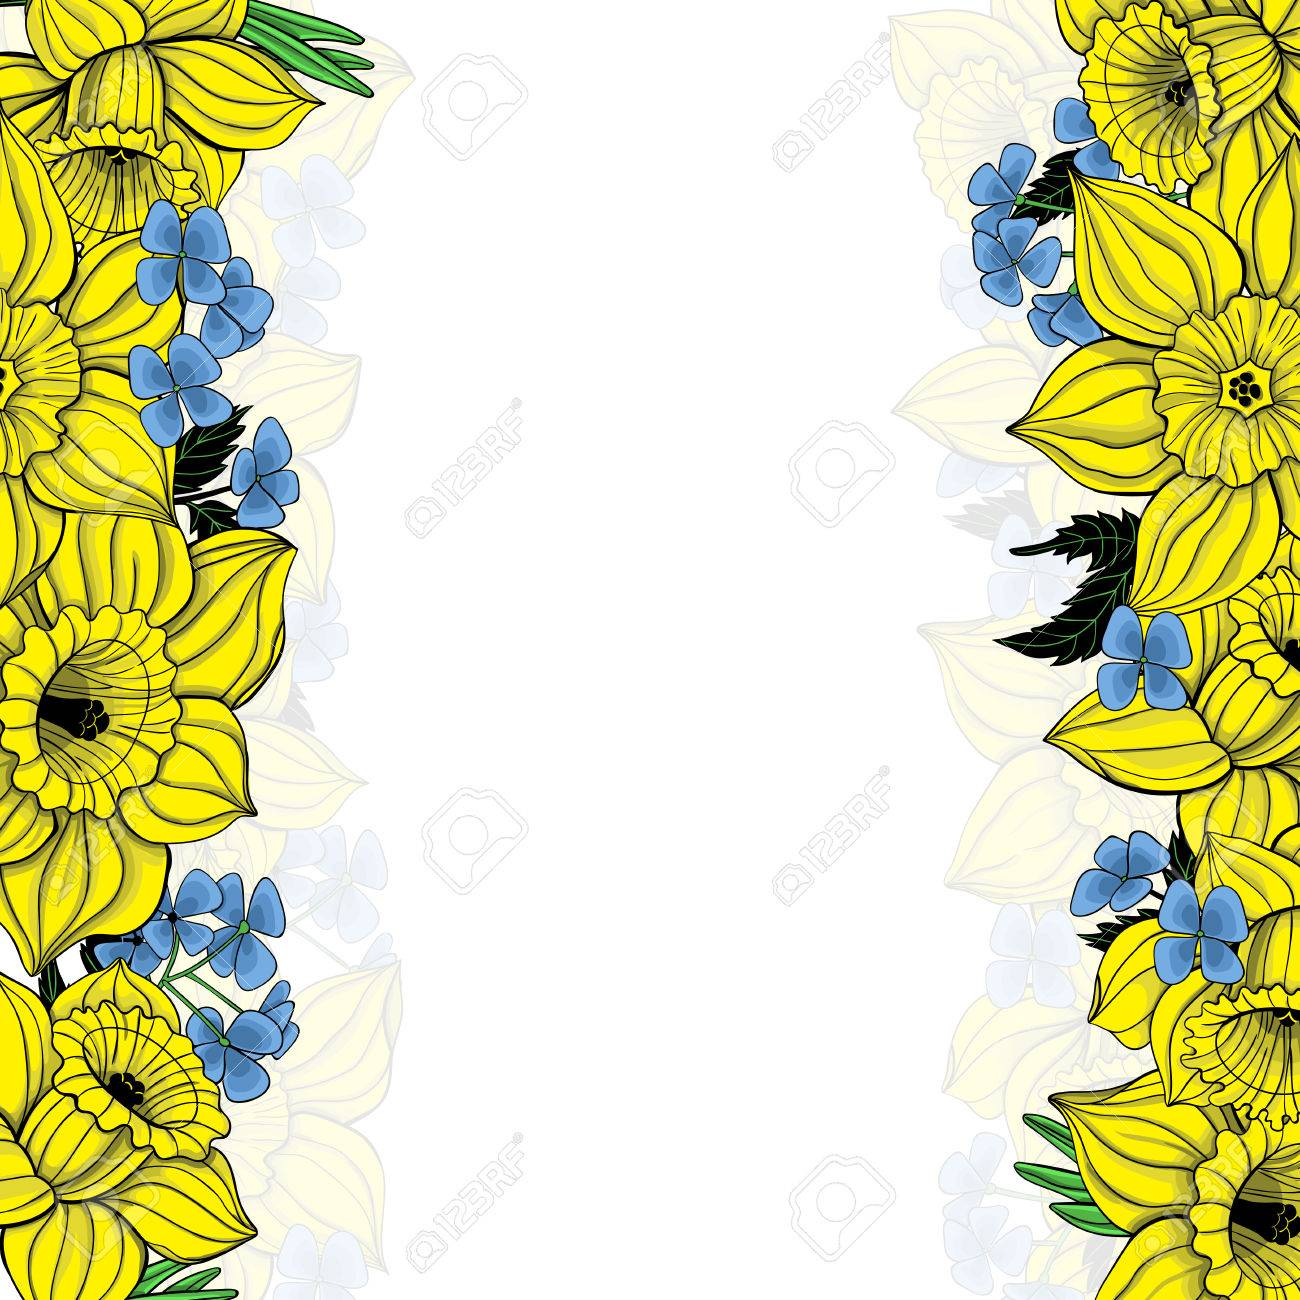 Floral Background With Spring Flowers Daffodils Forming Borders